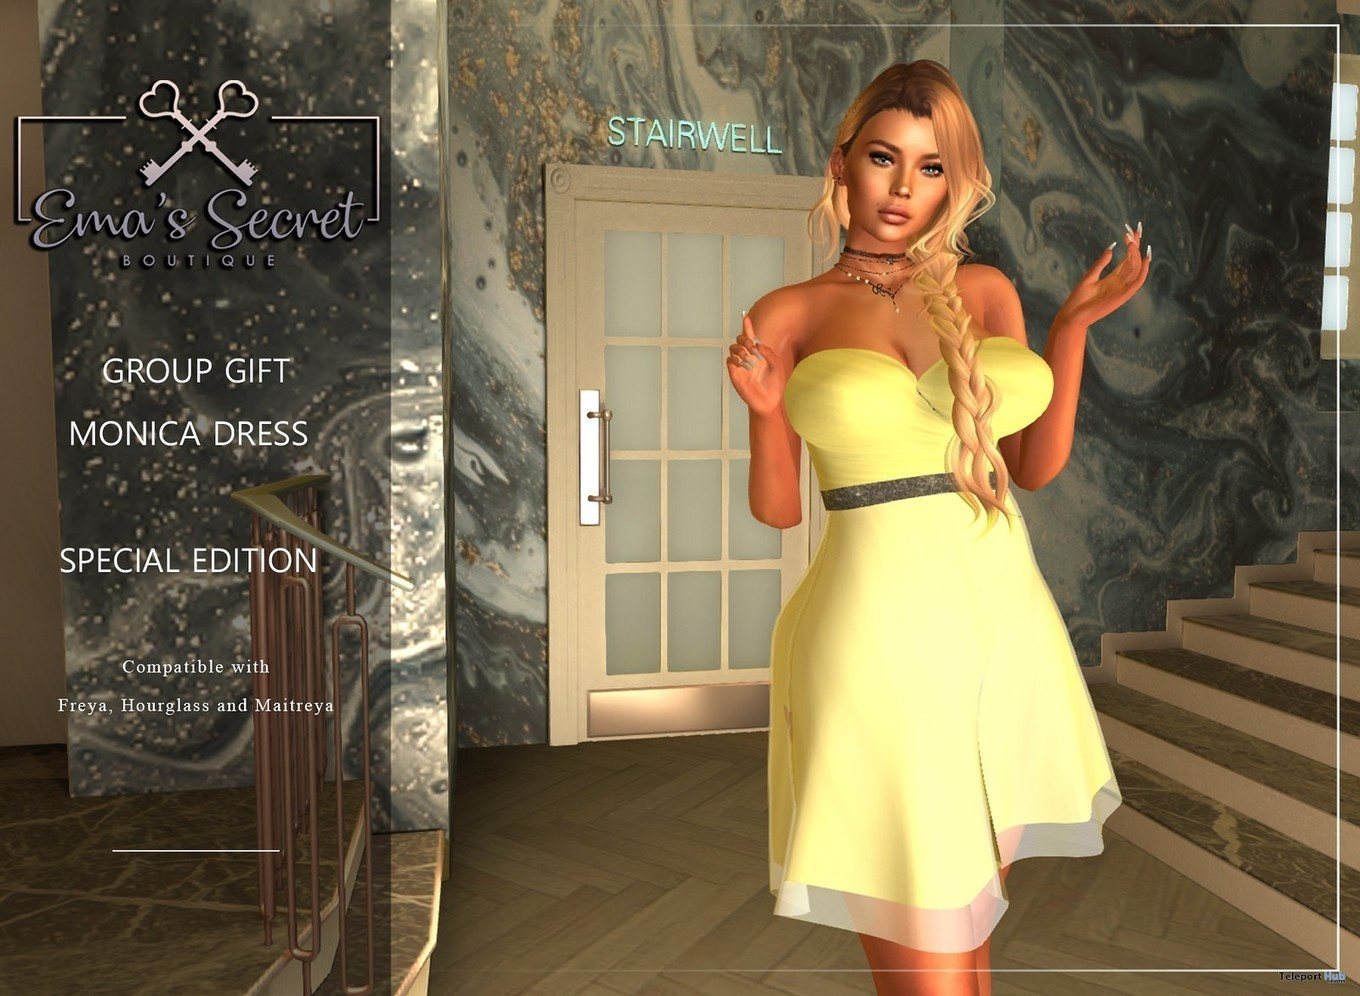 d5fce3d1dd0b9 Monica Dress Special Edition April 2019 Group Gift by Ema s Secret